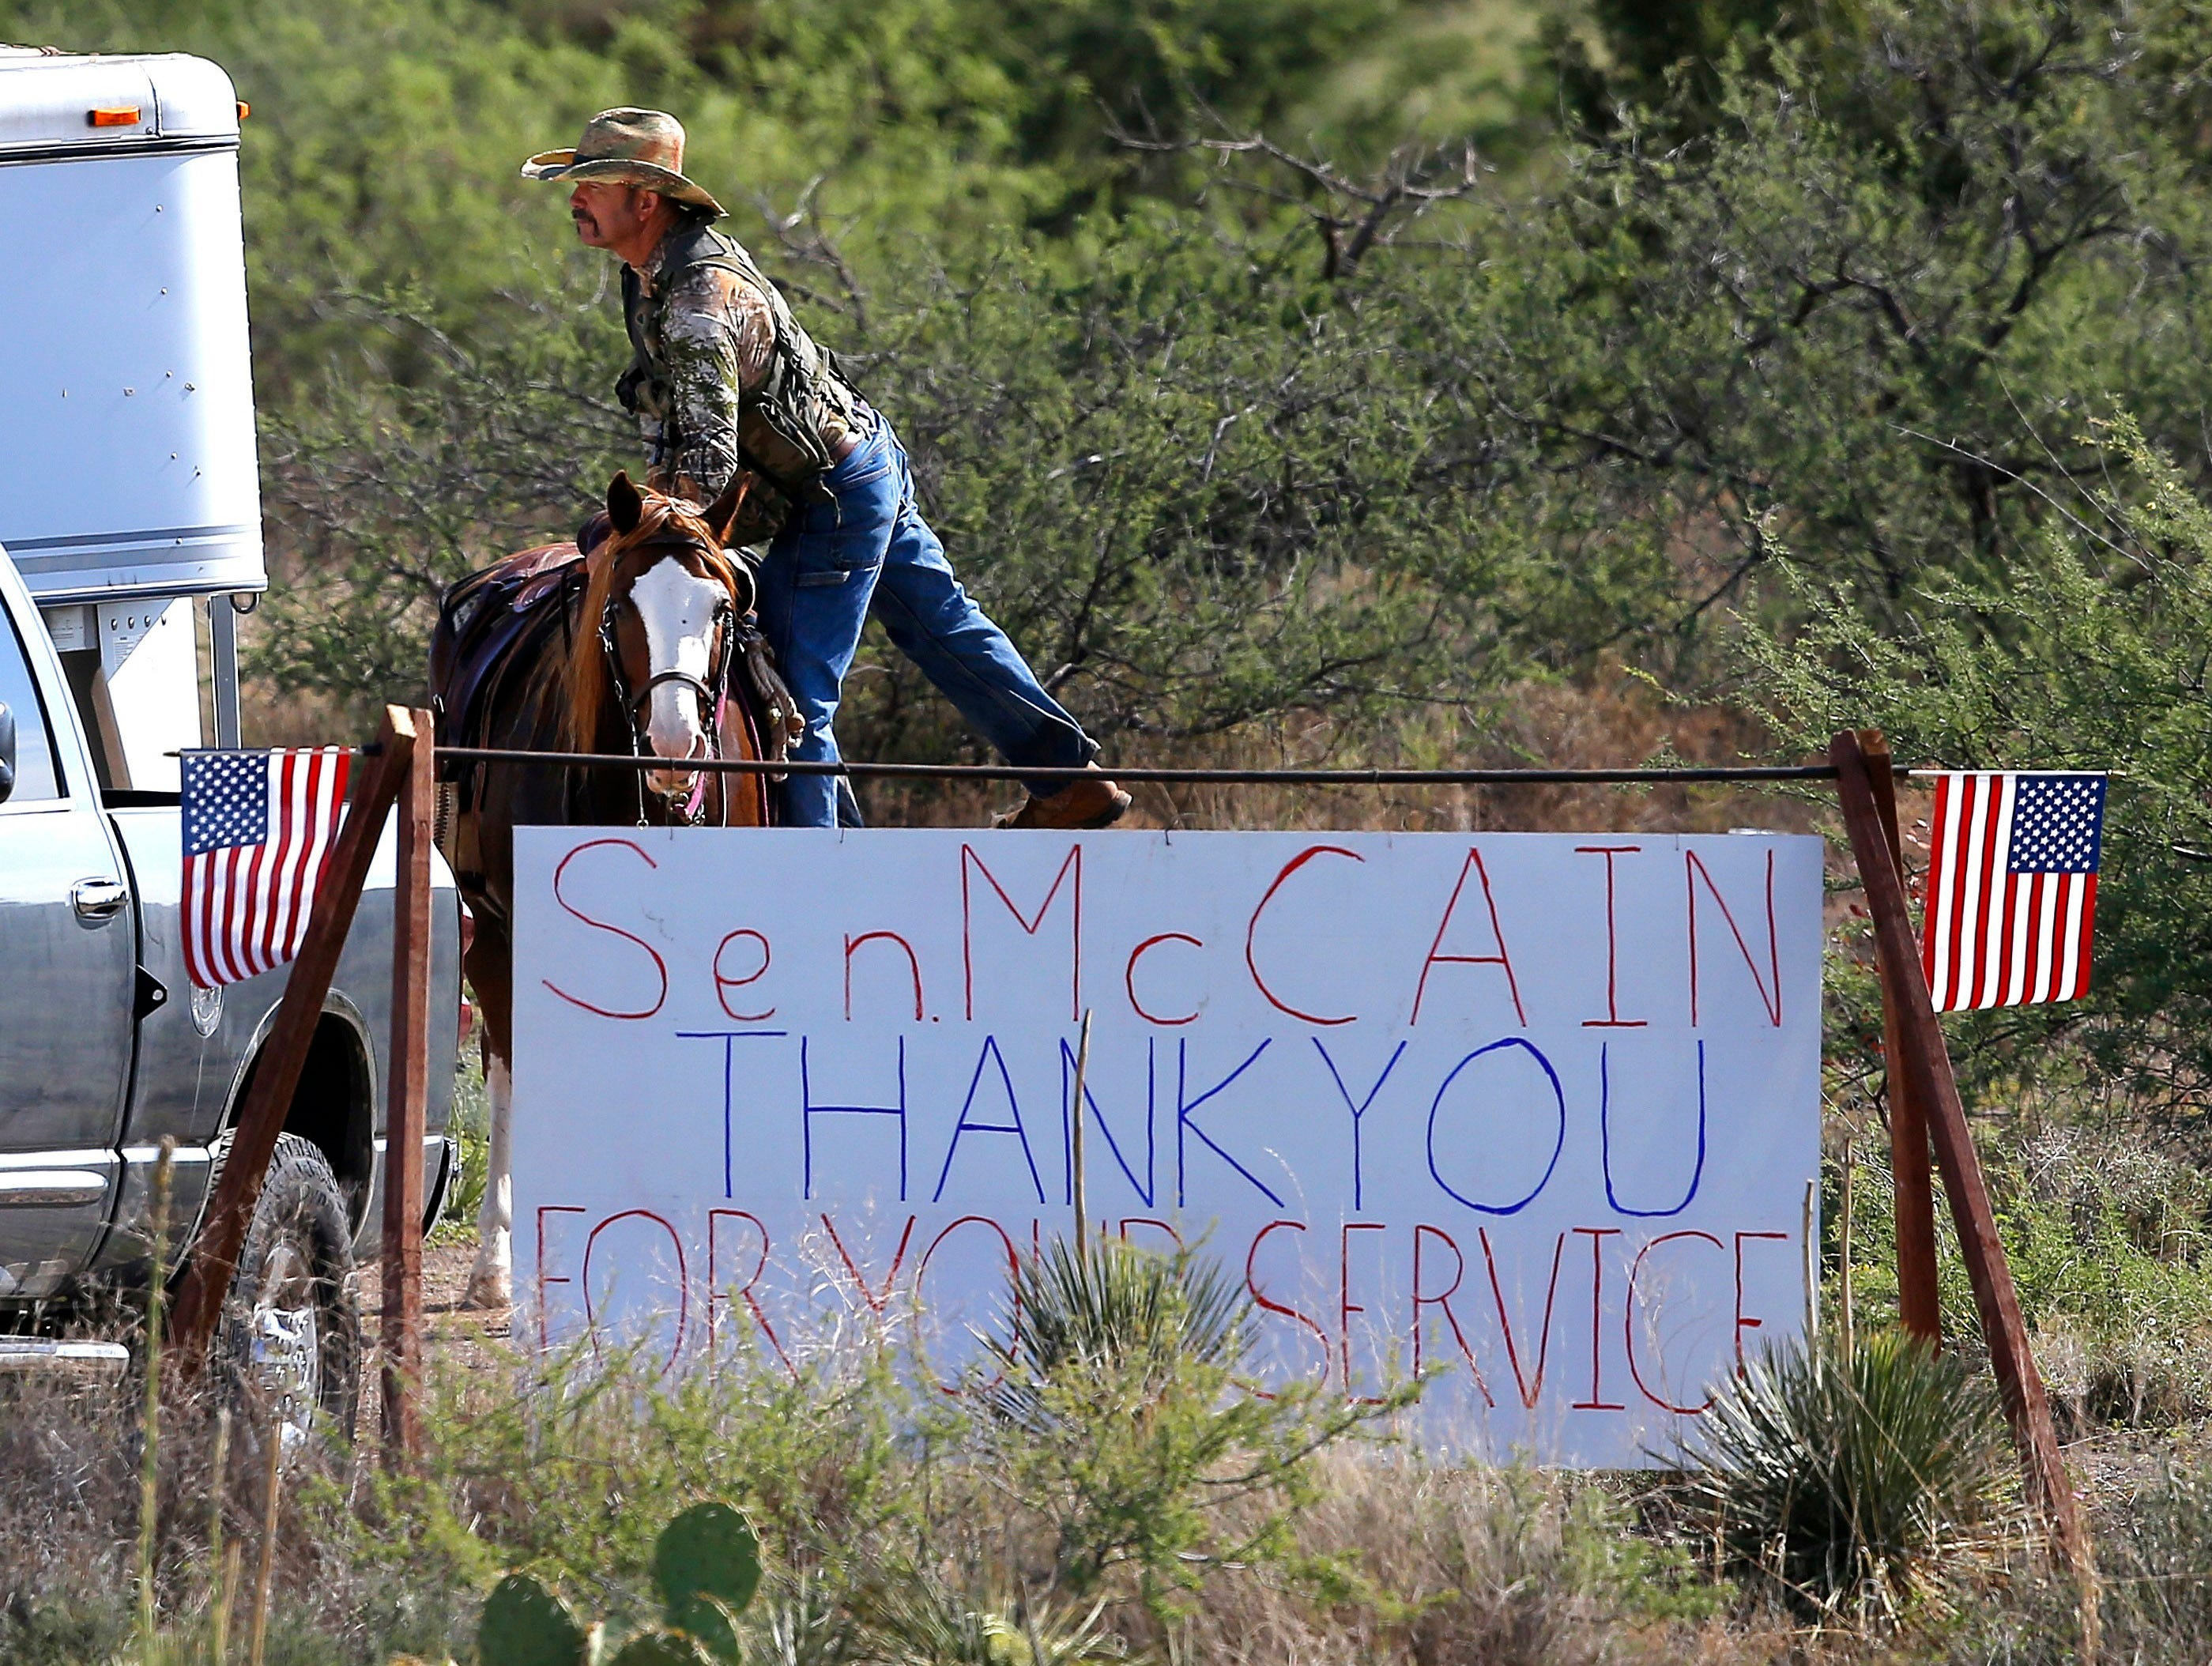 A rancher gets off his horse at the entrance to the McCain compound on Aug. 25, 2018, in Cornville.